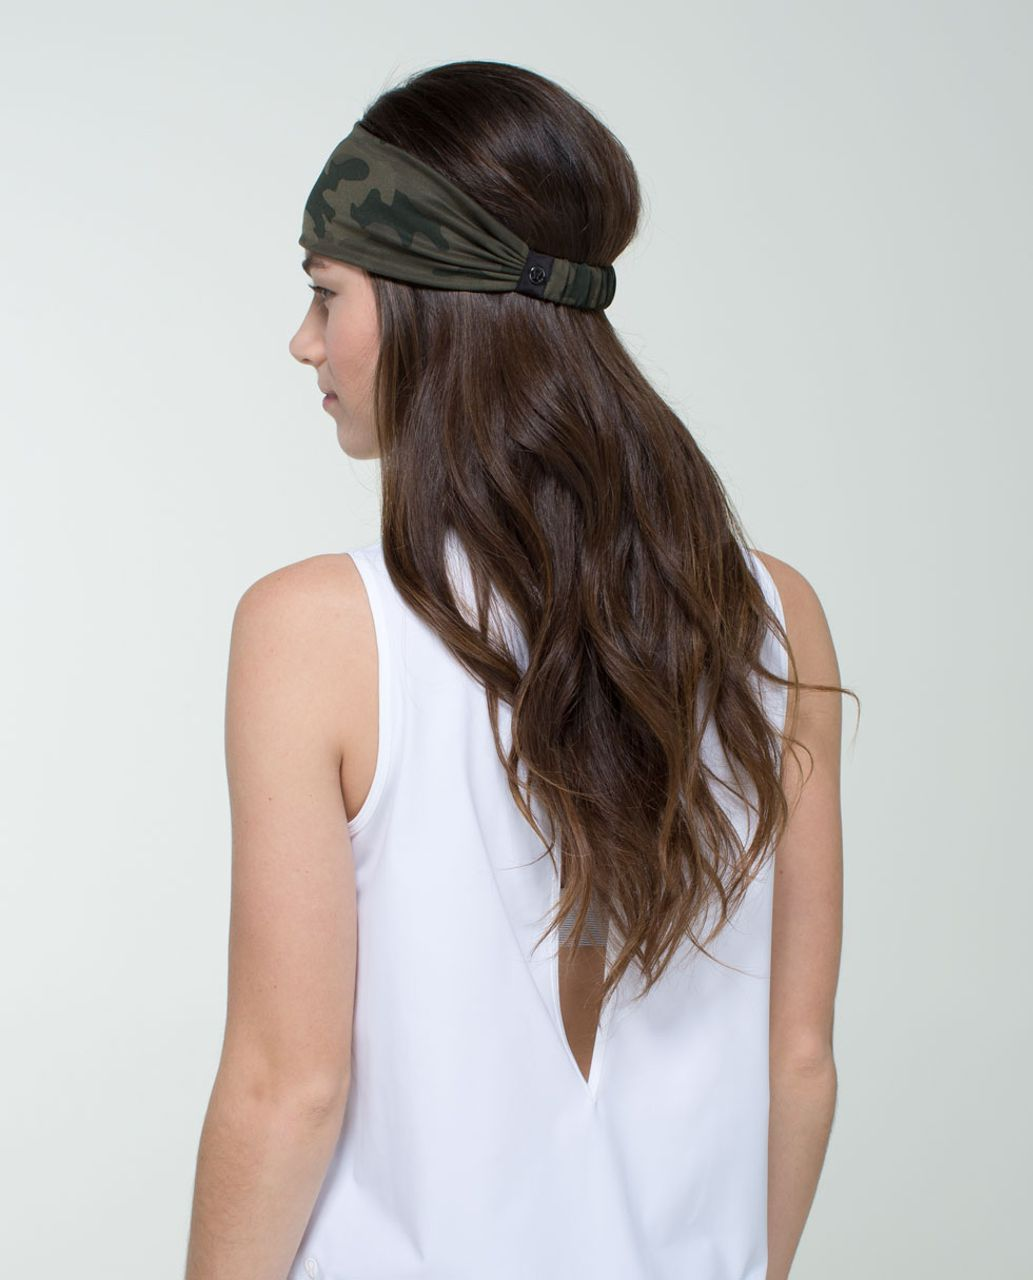 Lululemon Bang Buster Headband *Reversible - Savasana Camo 20cm Fatigue Green / Black